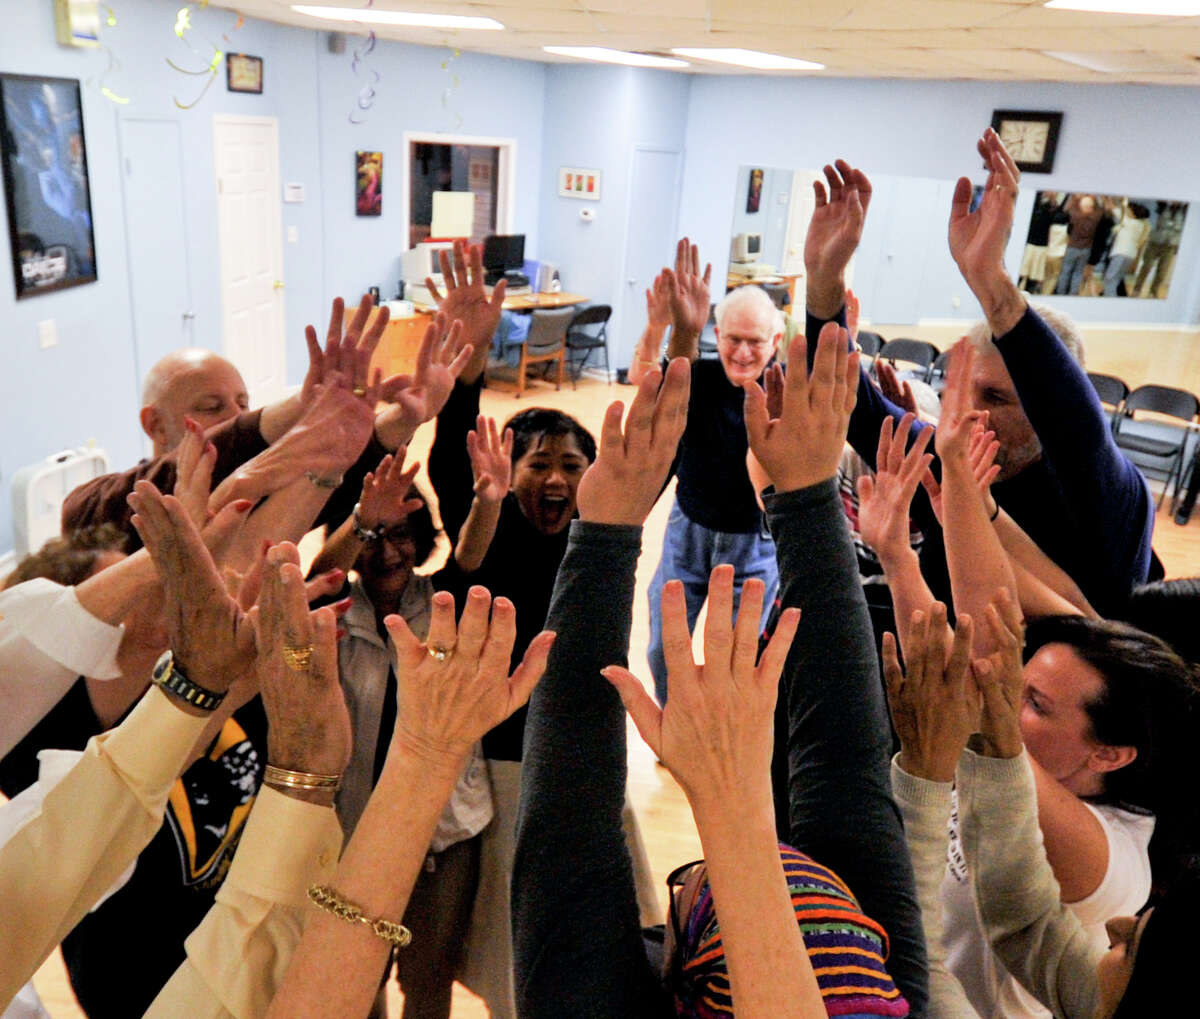 Members of the Laughter Yoga Club high-five each other during an exercise recently.